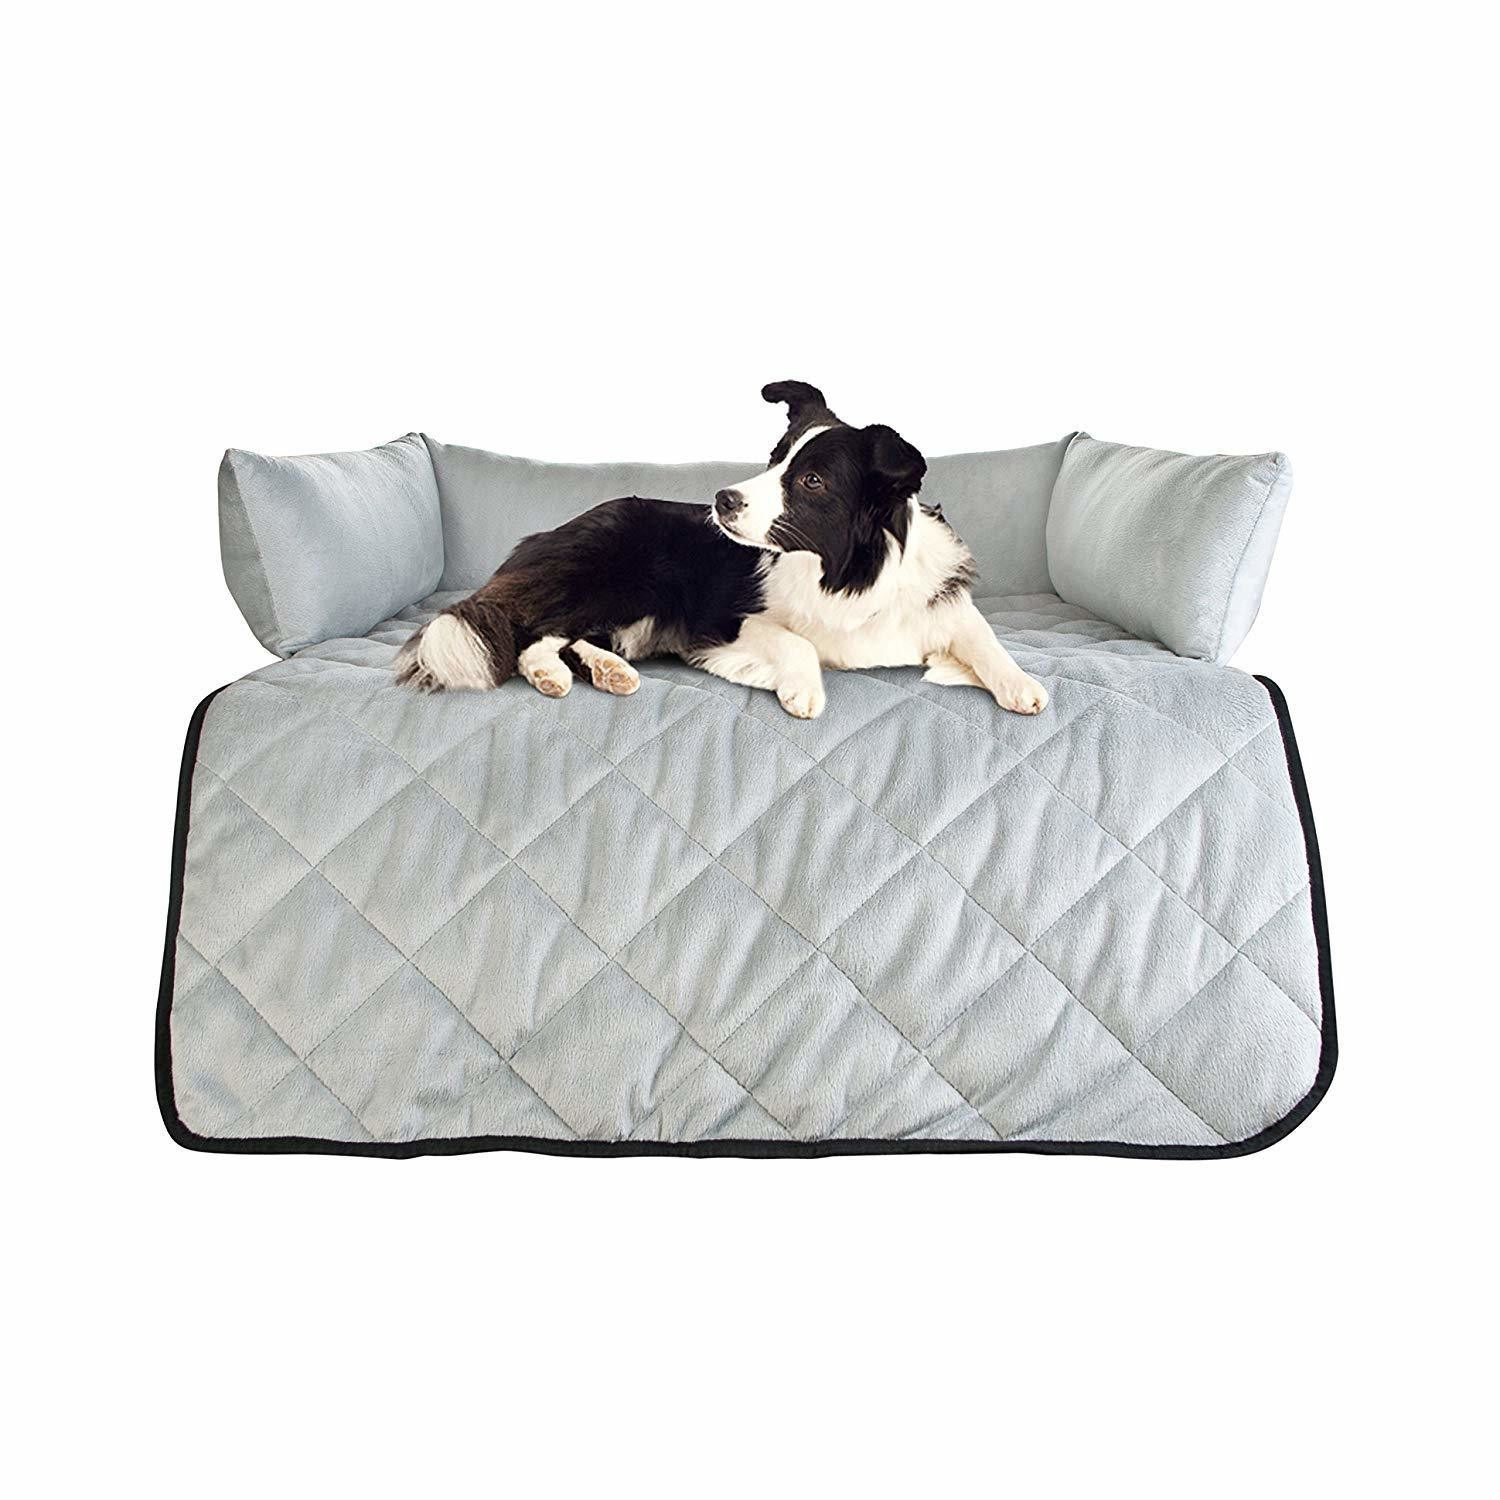 Surprising Couch Cover For Dogs Cats Light Gray Large Andrewgaddart Wooden Chair Designs For Living Room Andrewgaddartcom